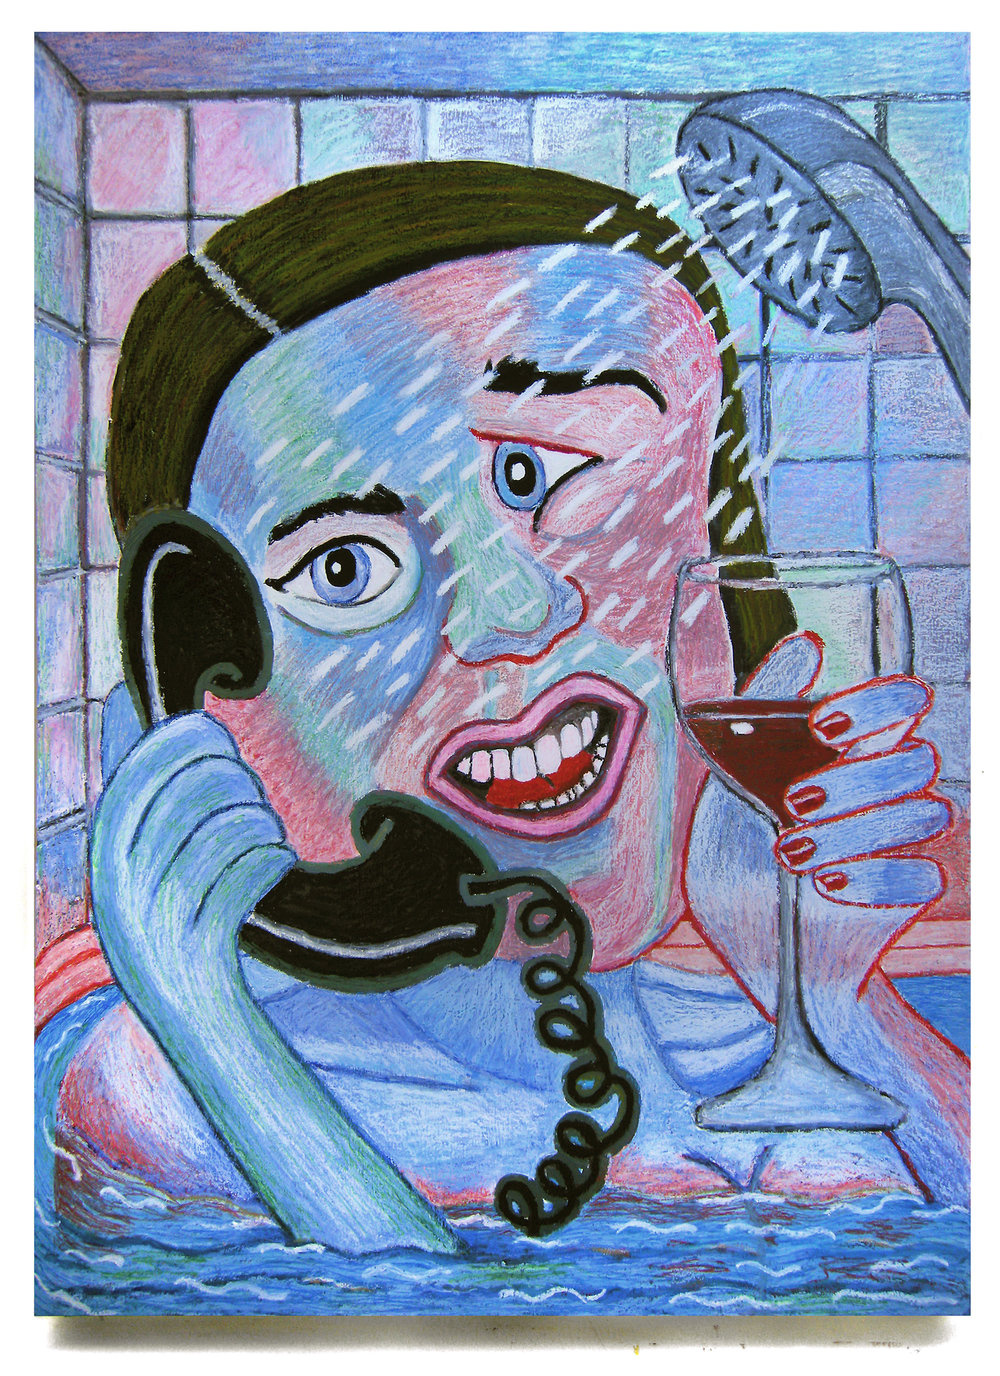 Bruna Massadas, Big Angie is Drunk-Dialing Again, 2016, Acrylic and oil pastel on panel, 48 x 36 inches